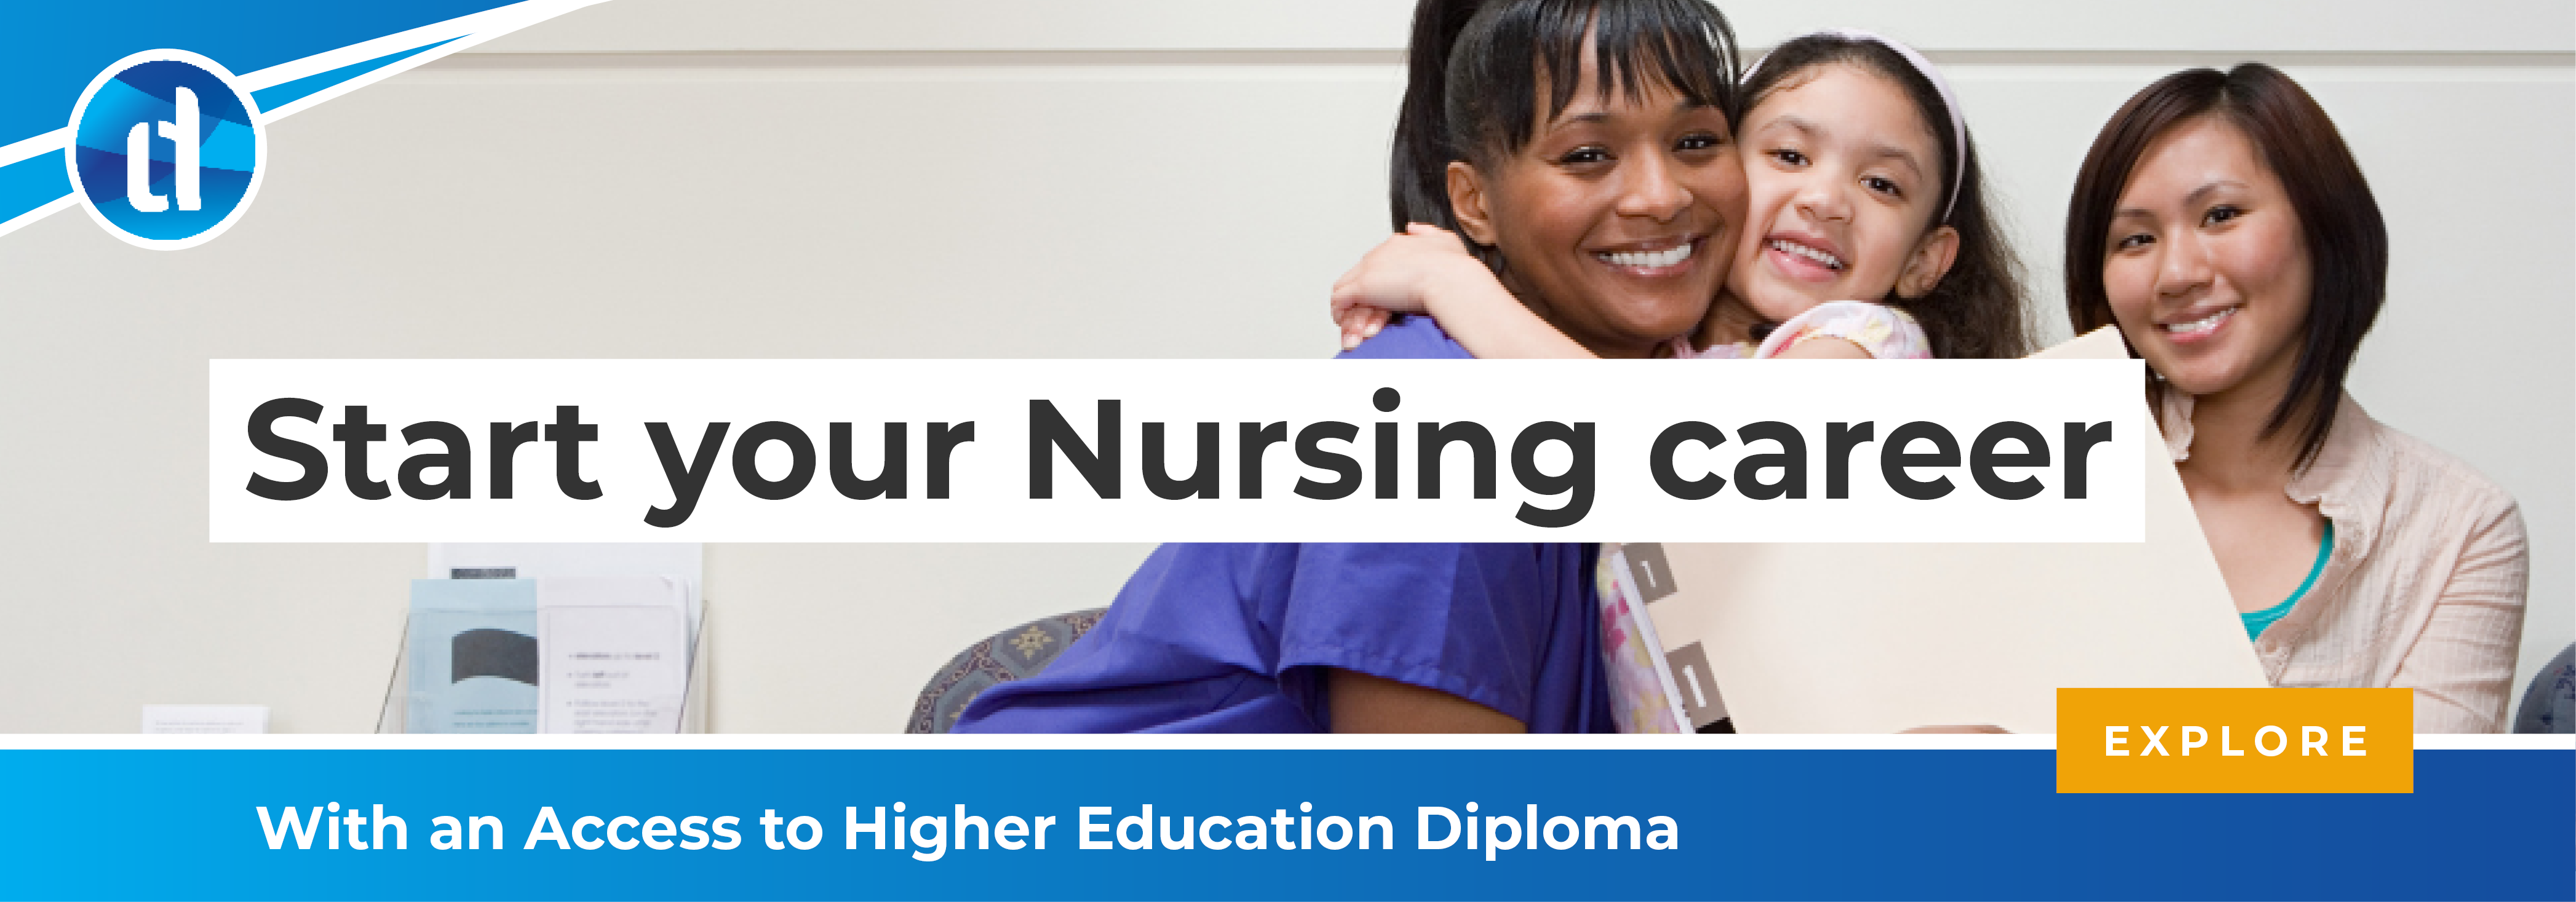 Your career options in nursing